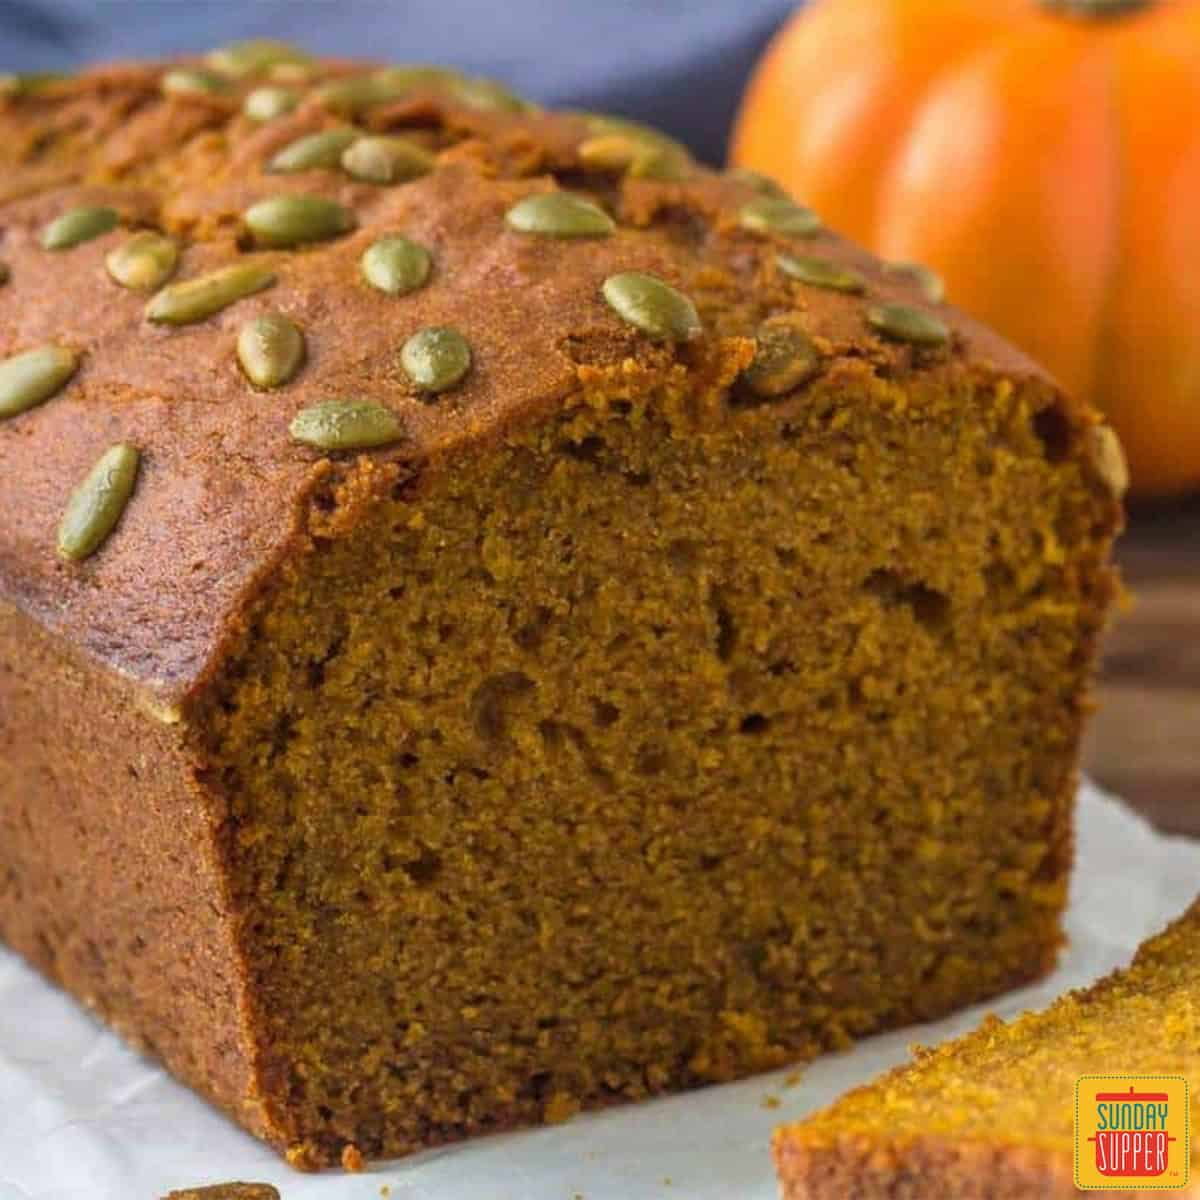 A loaf of Starbucks Pumpkin bread on a white platter with pumpkin seeds on top